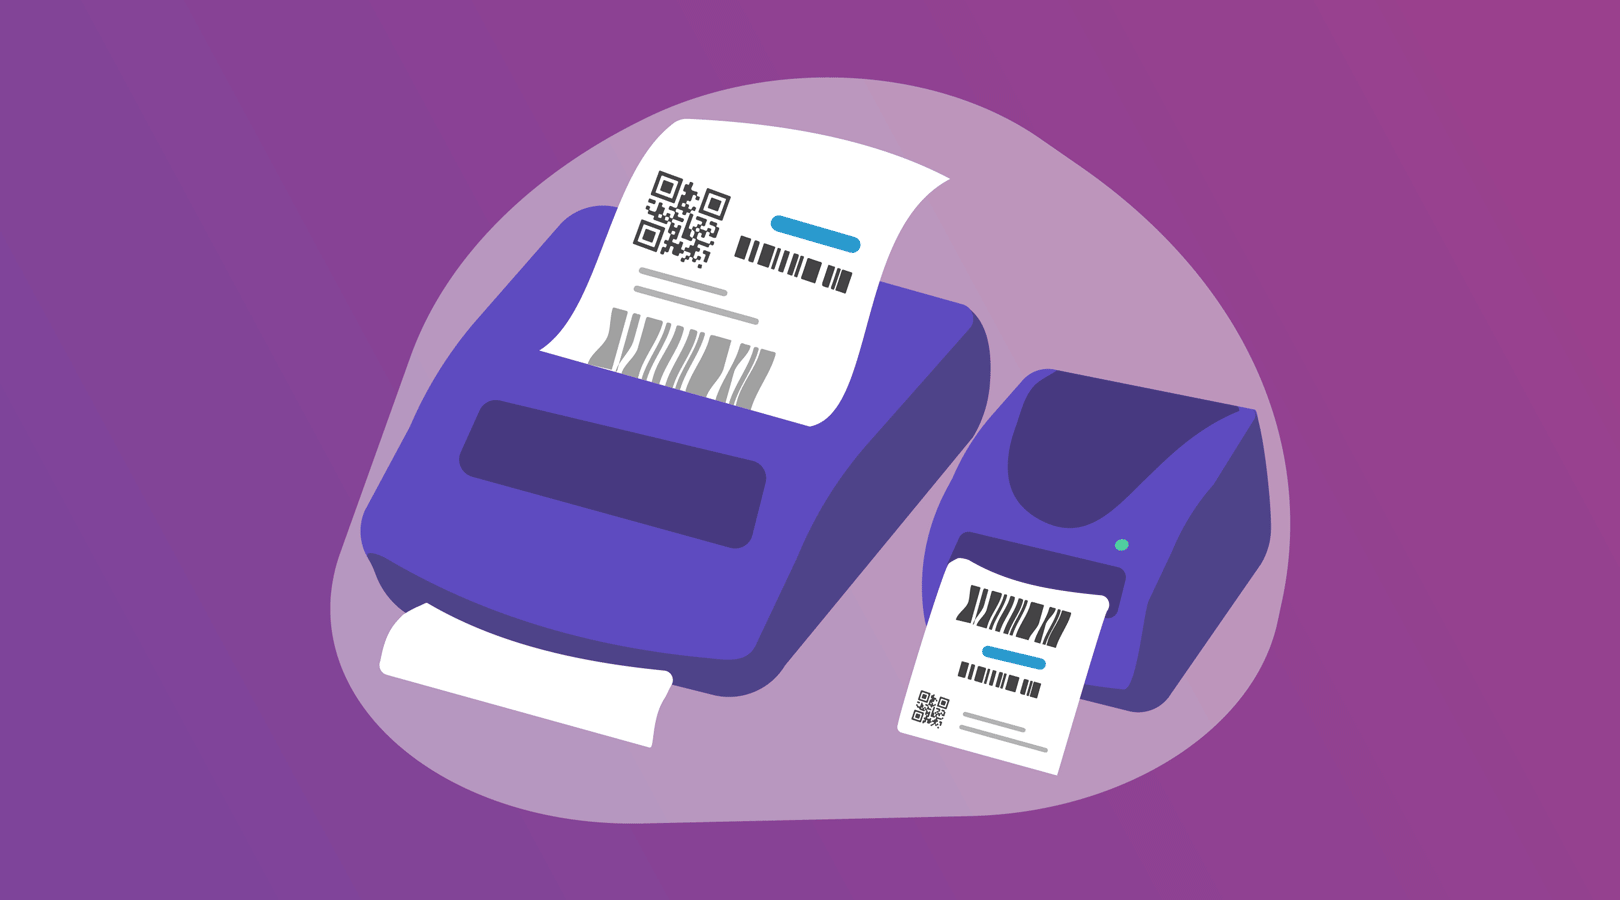 New Feature: Label Printing Options